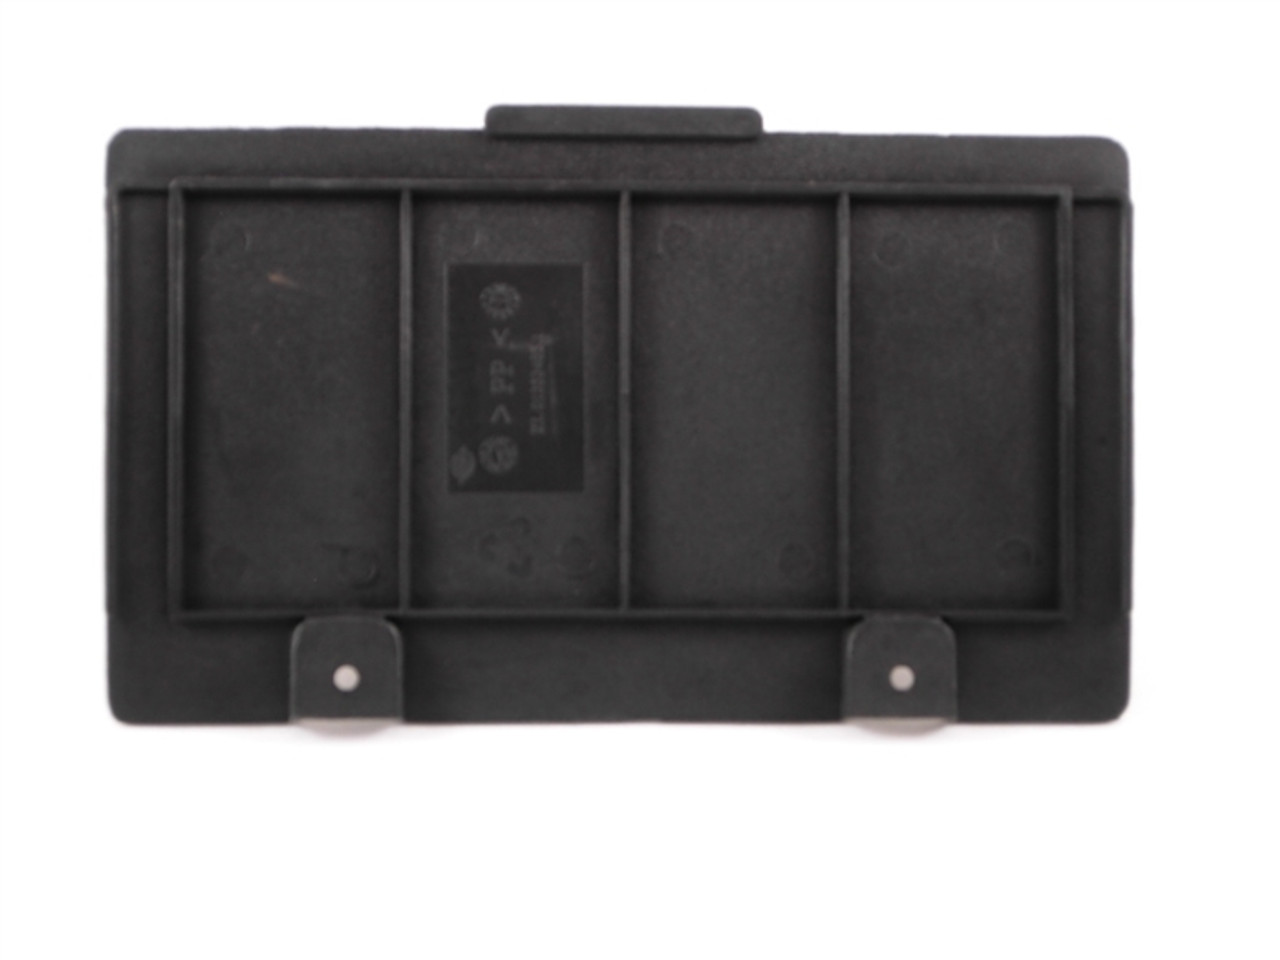 battery cover/lid 11678-a94-4